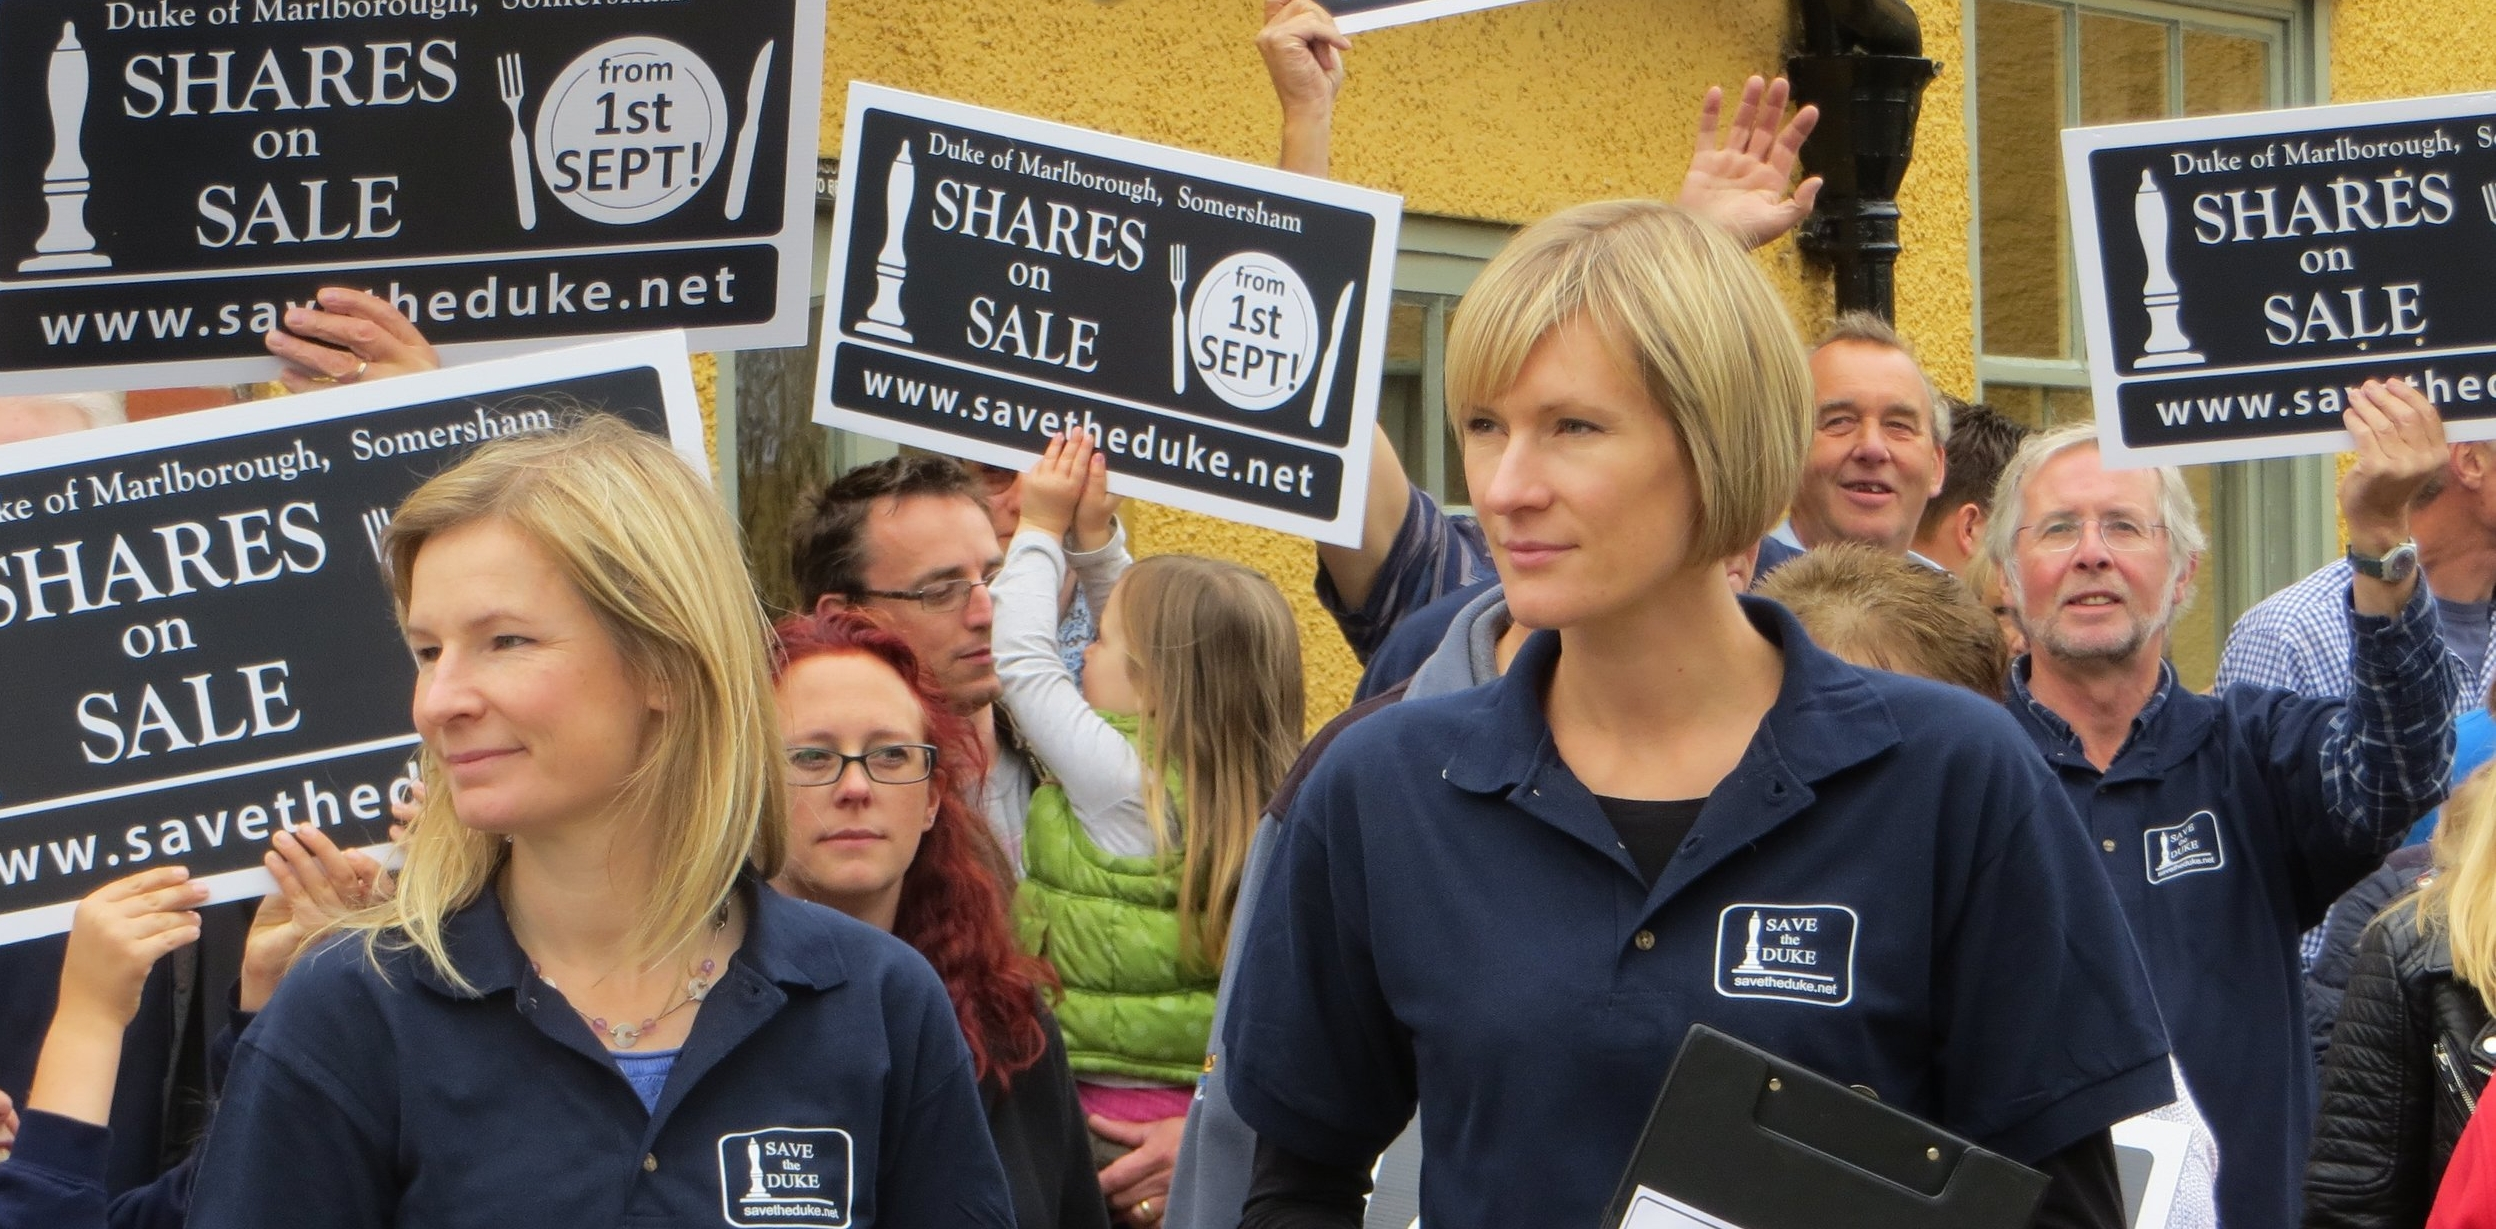 Save the Duke Share Launch, led by campaigners Sarah Caston and Lucy Bat....jpg